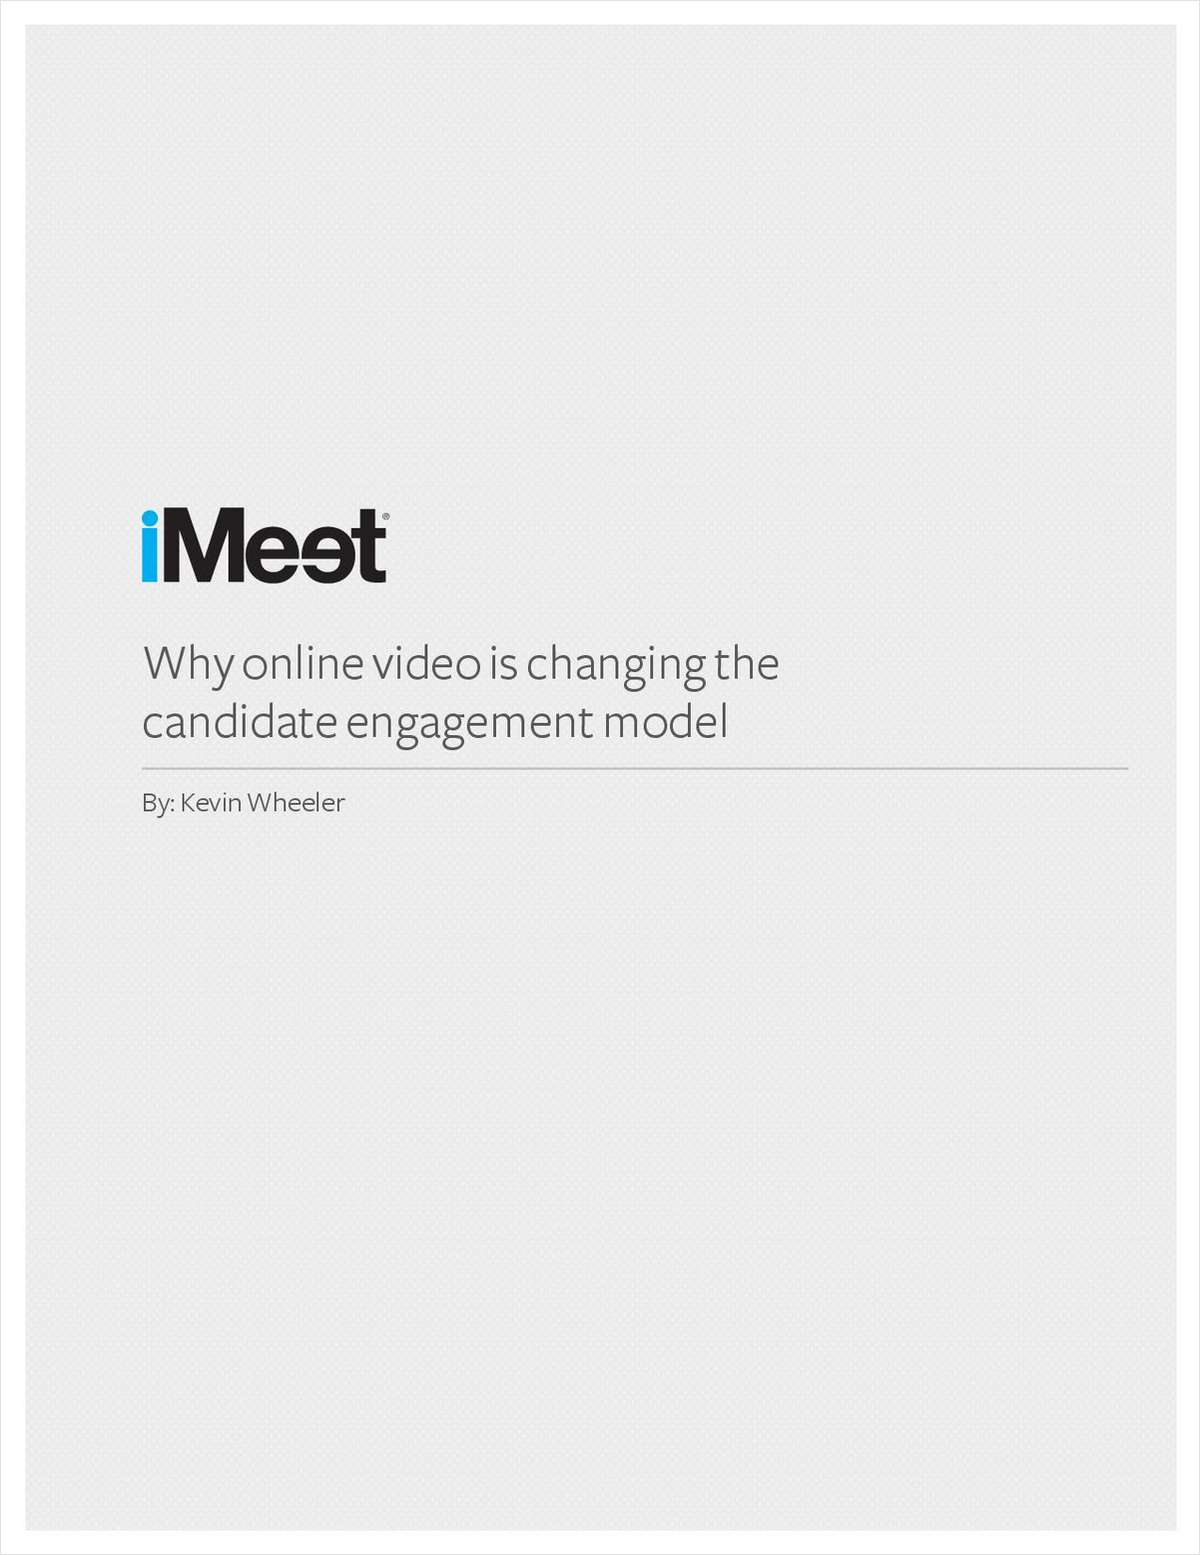 How Online Video is Changing the Candidate Engagement Model